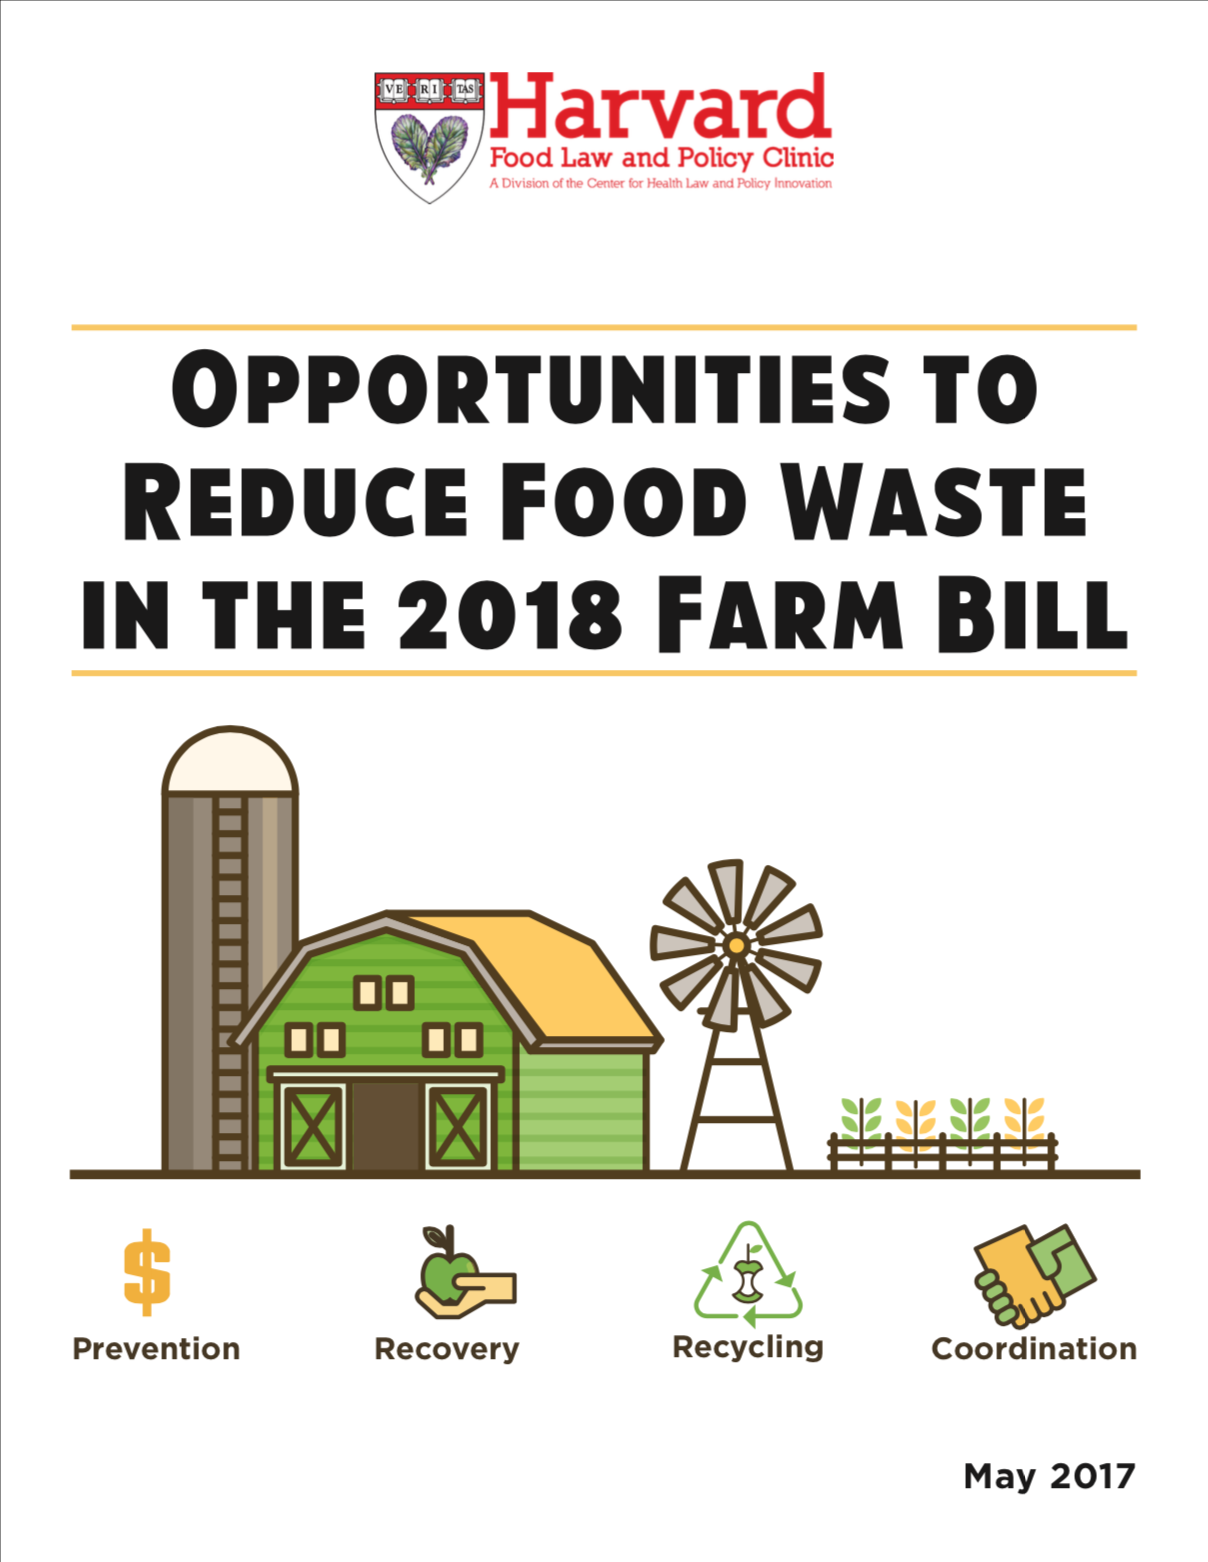 Opportunities to Reduce Food Waste in the 2018 Farm Bill